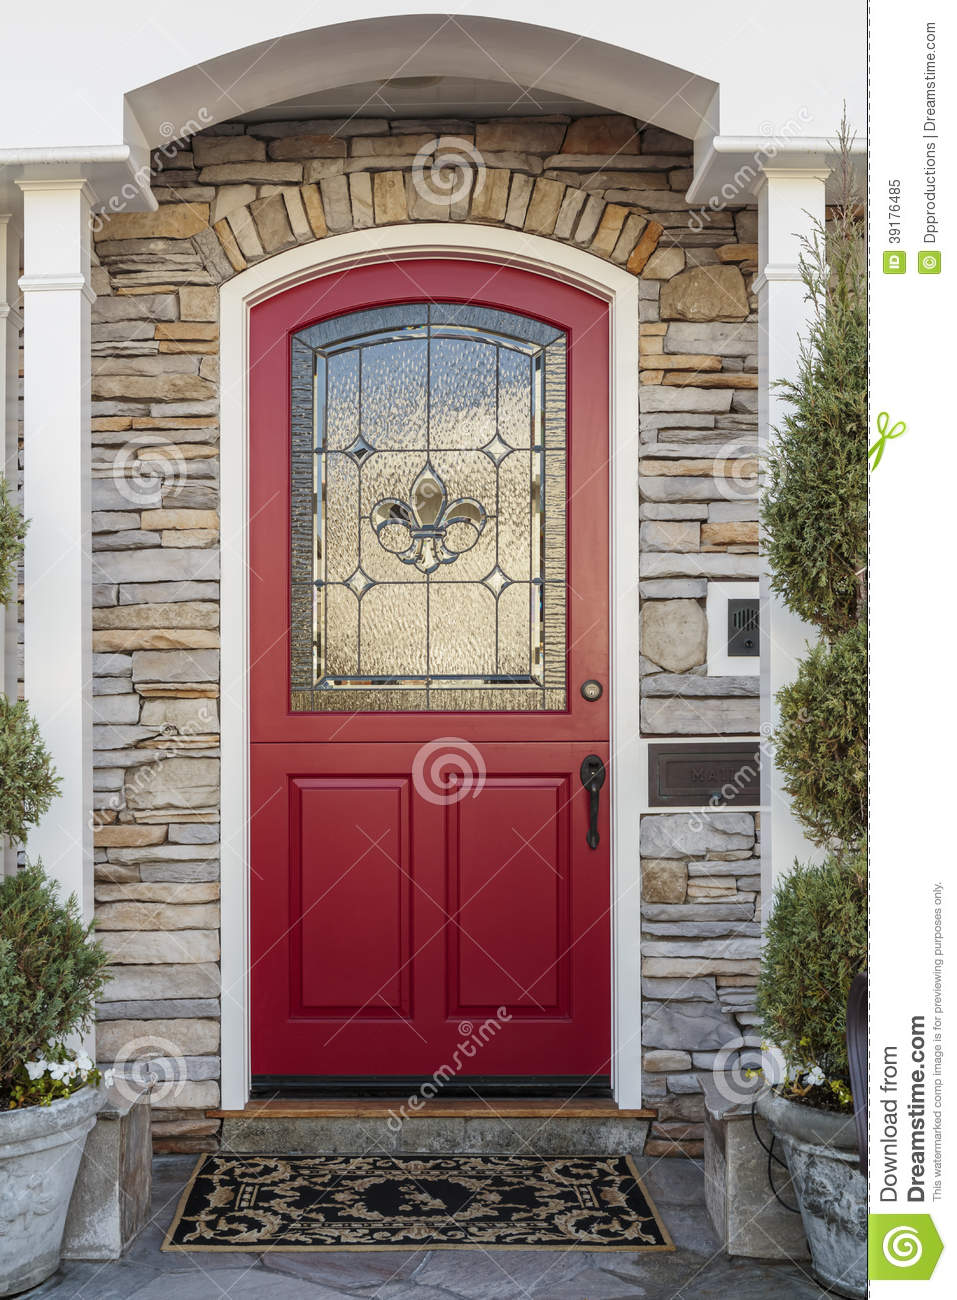 Ornate Red Front Door Of A Home Stock Image Image Of